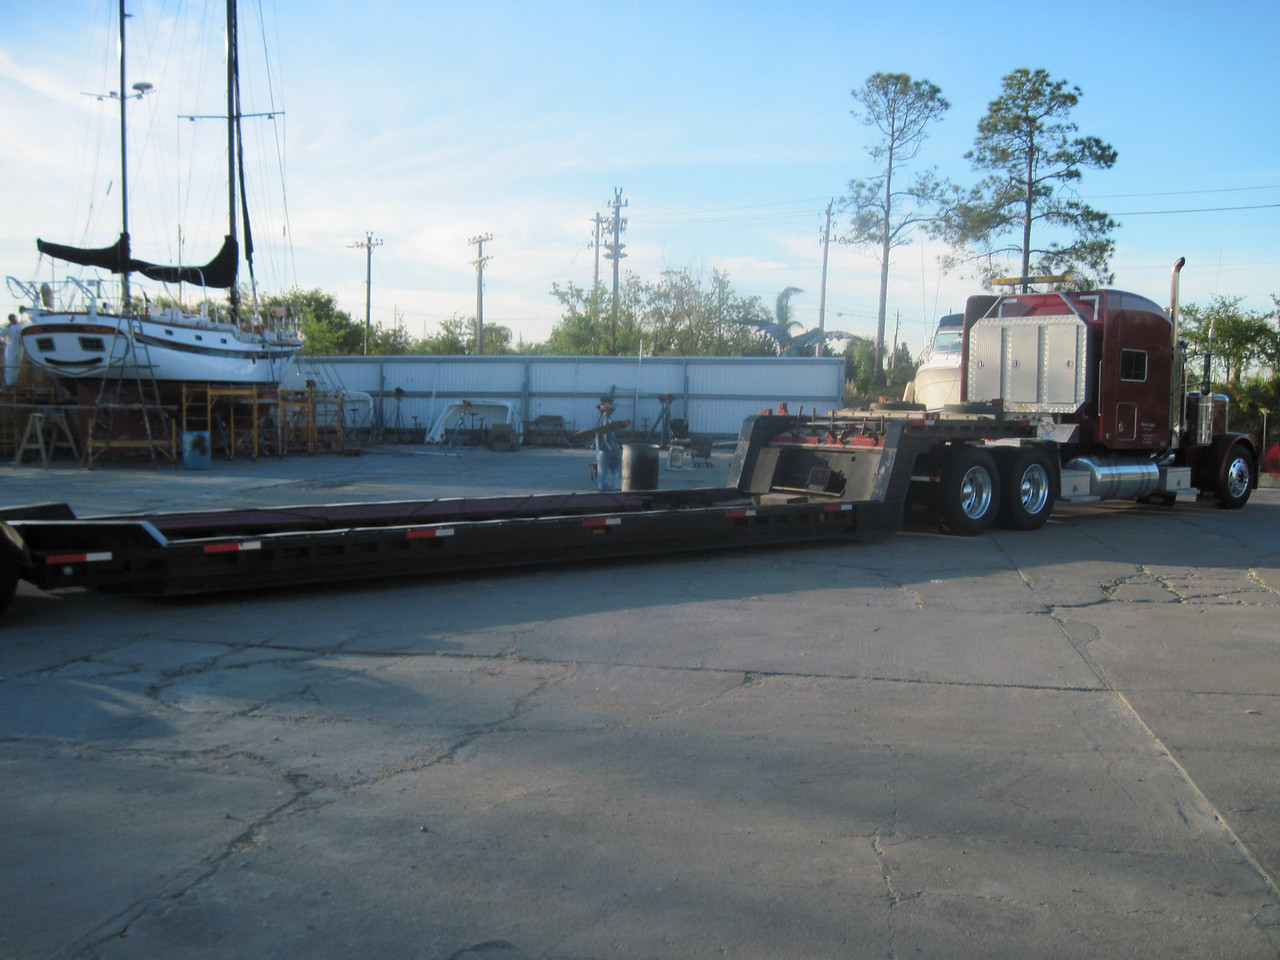 What do you need to move a 42 foot boat? A Big Ass Truck. A 22 wheeler she is...